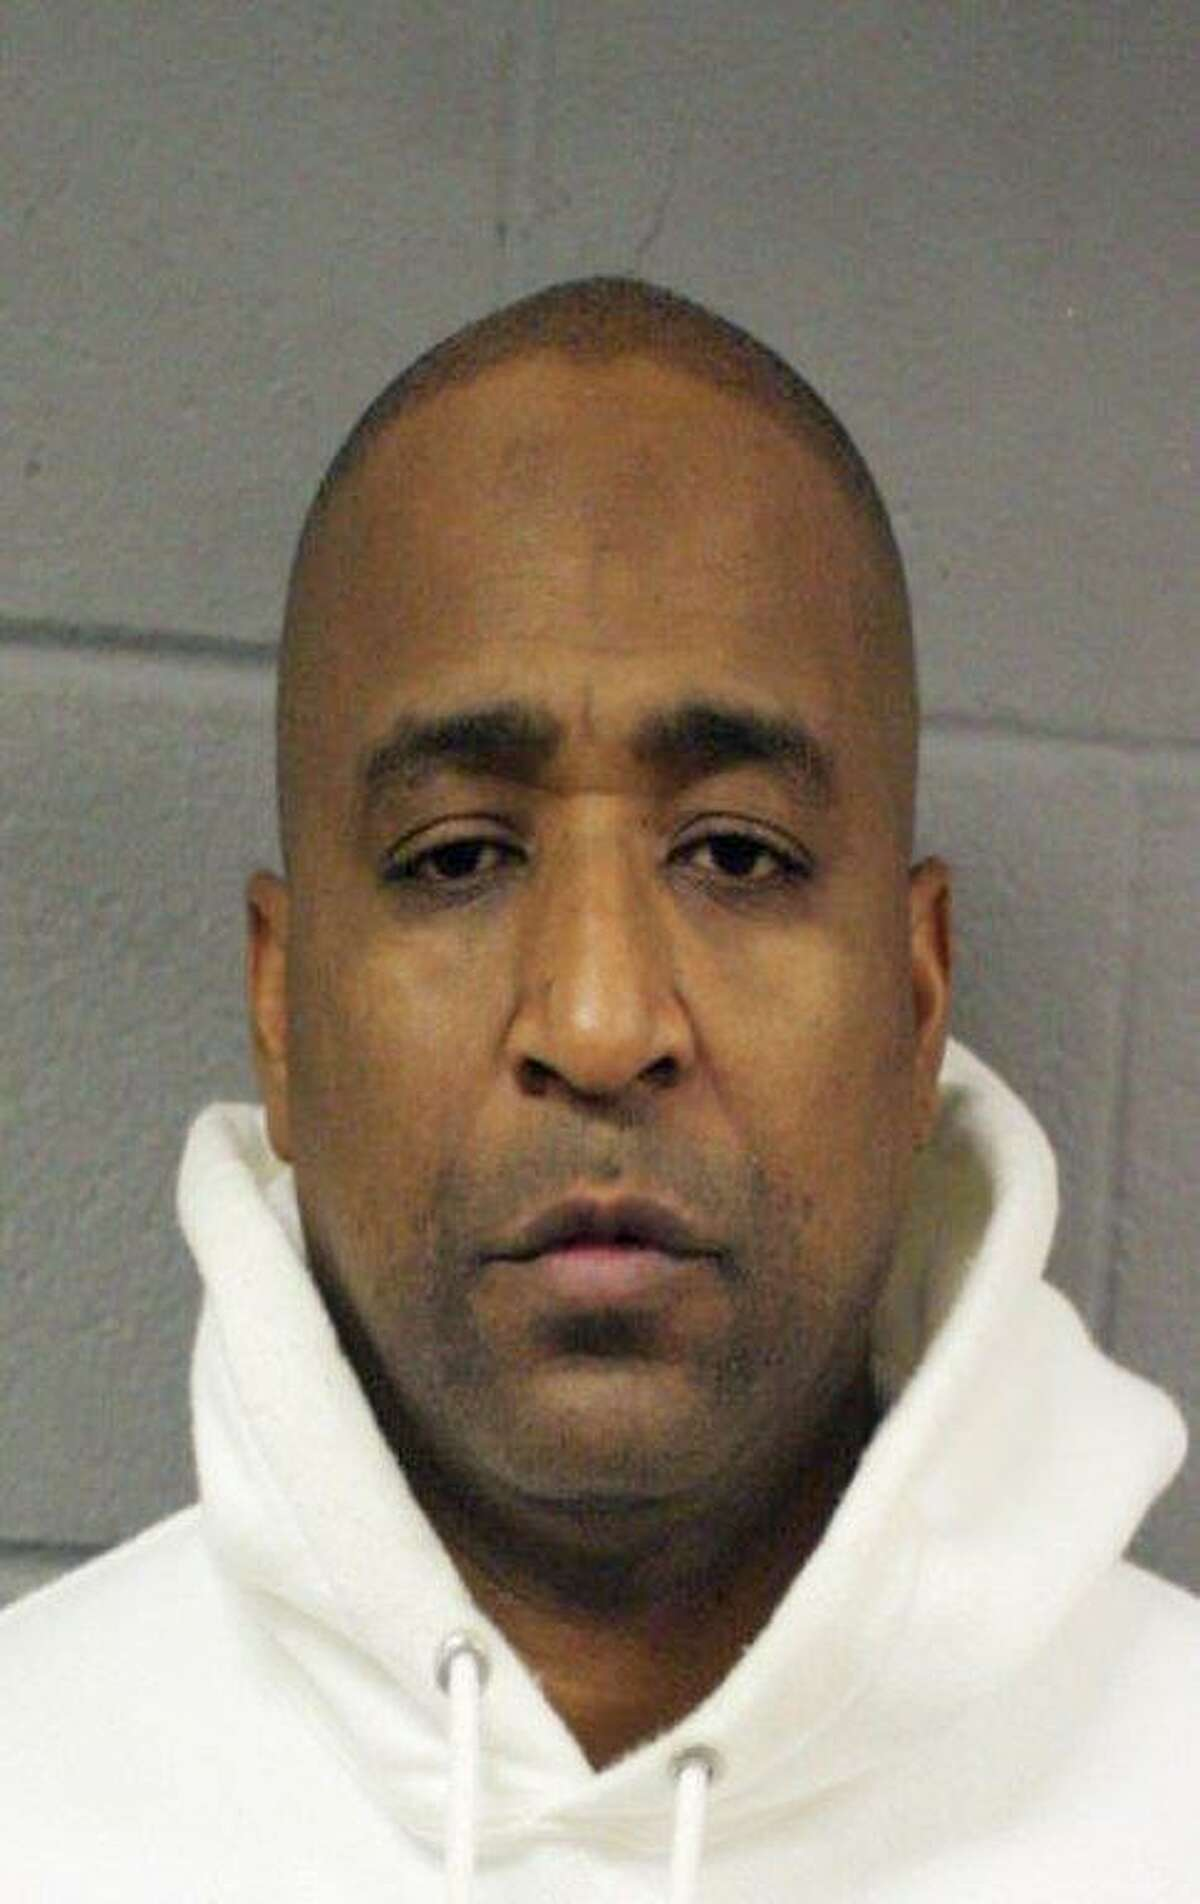 Mark Anthony Cole, 43, of Houston, was arrested Oct. 17, 2018 amid allegations he exploited 13 women following a six-week operation that took undercover officers into the upscale Post Oak Hotel in the Galleria area. Cole has been charged with aggravated promotion of prostitution, possession with intent to deliver a controlled substance and two counts of delivery of a controlled substance. >>MUGSHOTS: Houston's sex trade arrests in August 2018